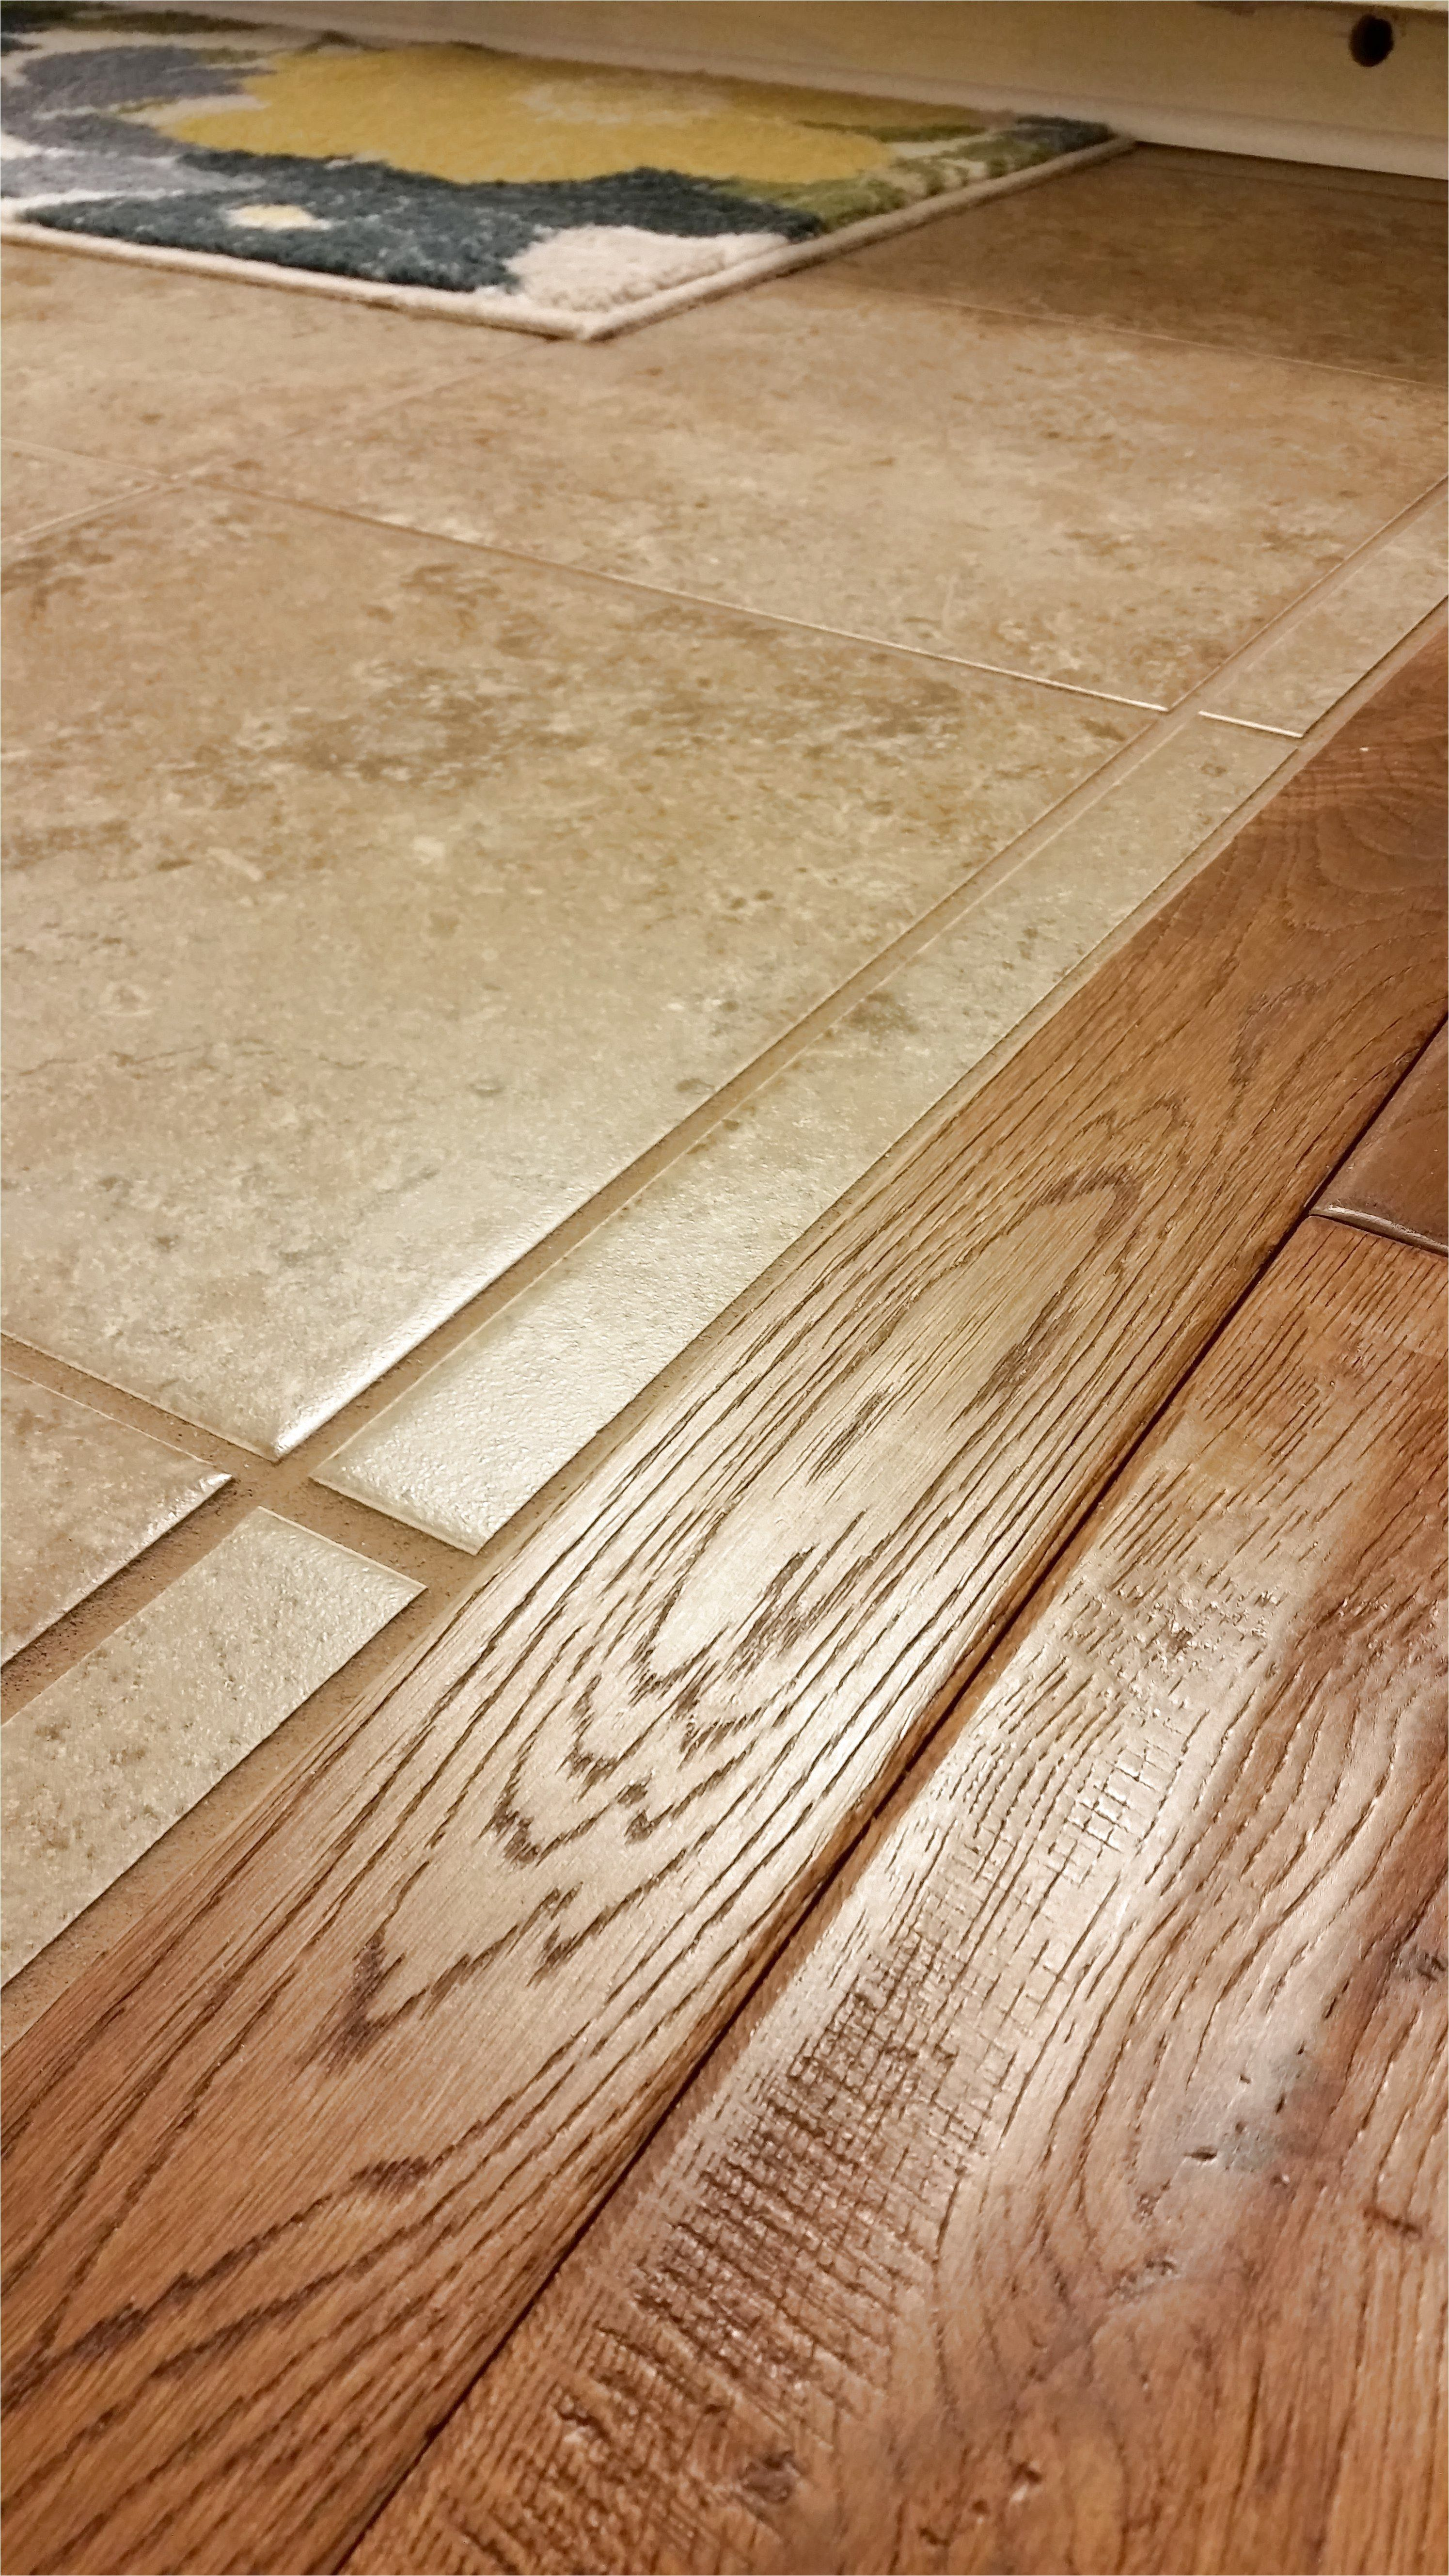 When Wood And Ceramic Tile Meet It Is Sweet Without A Lumpy Transition The Great Indoors Inc Cleveland In 2020 Flooring Wood Tile Floors Tile To Wood Transition